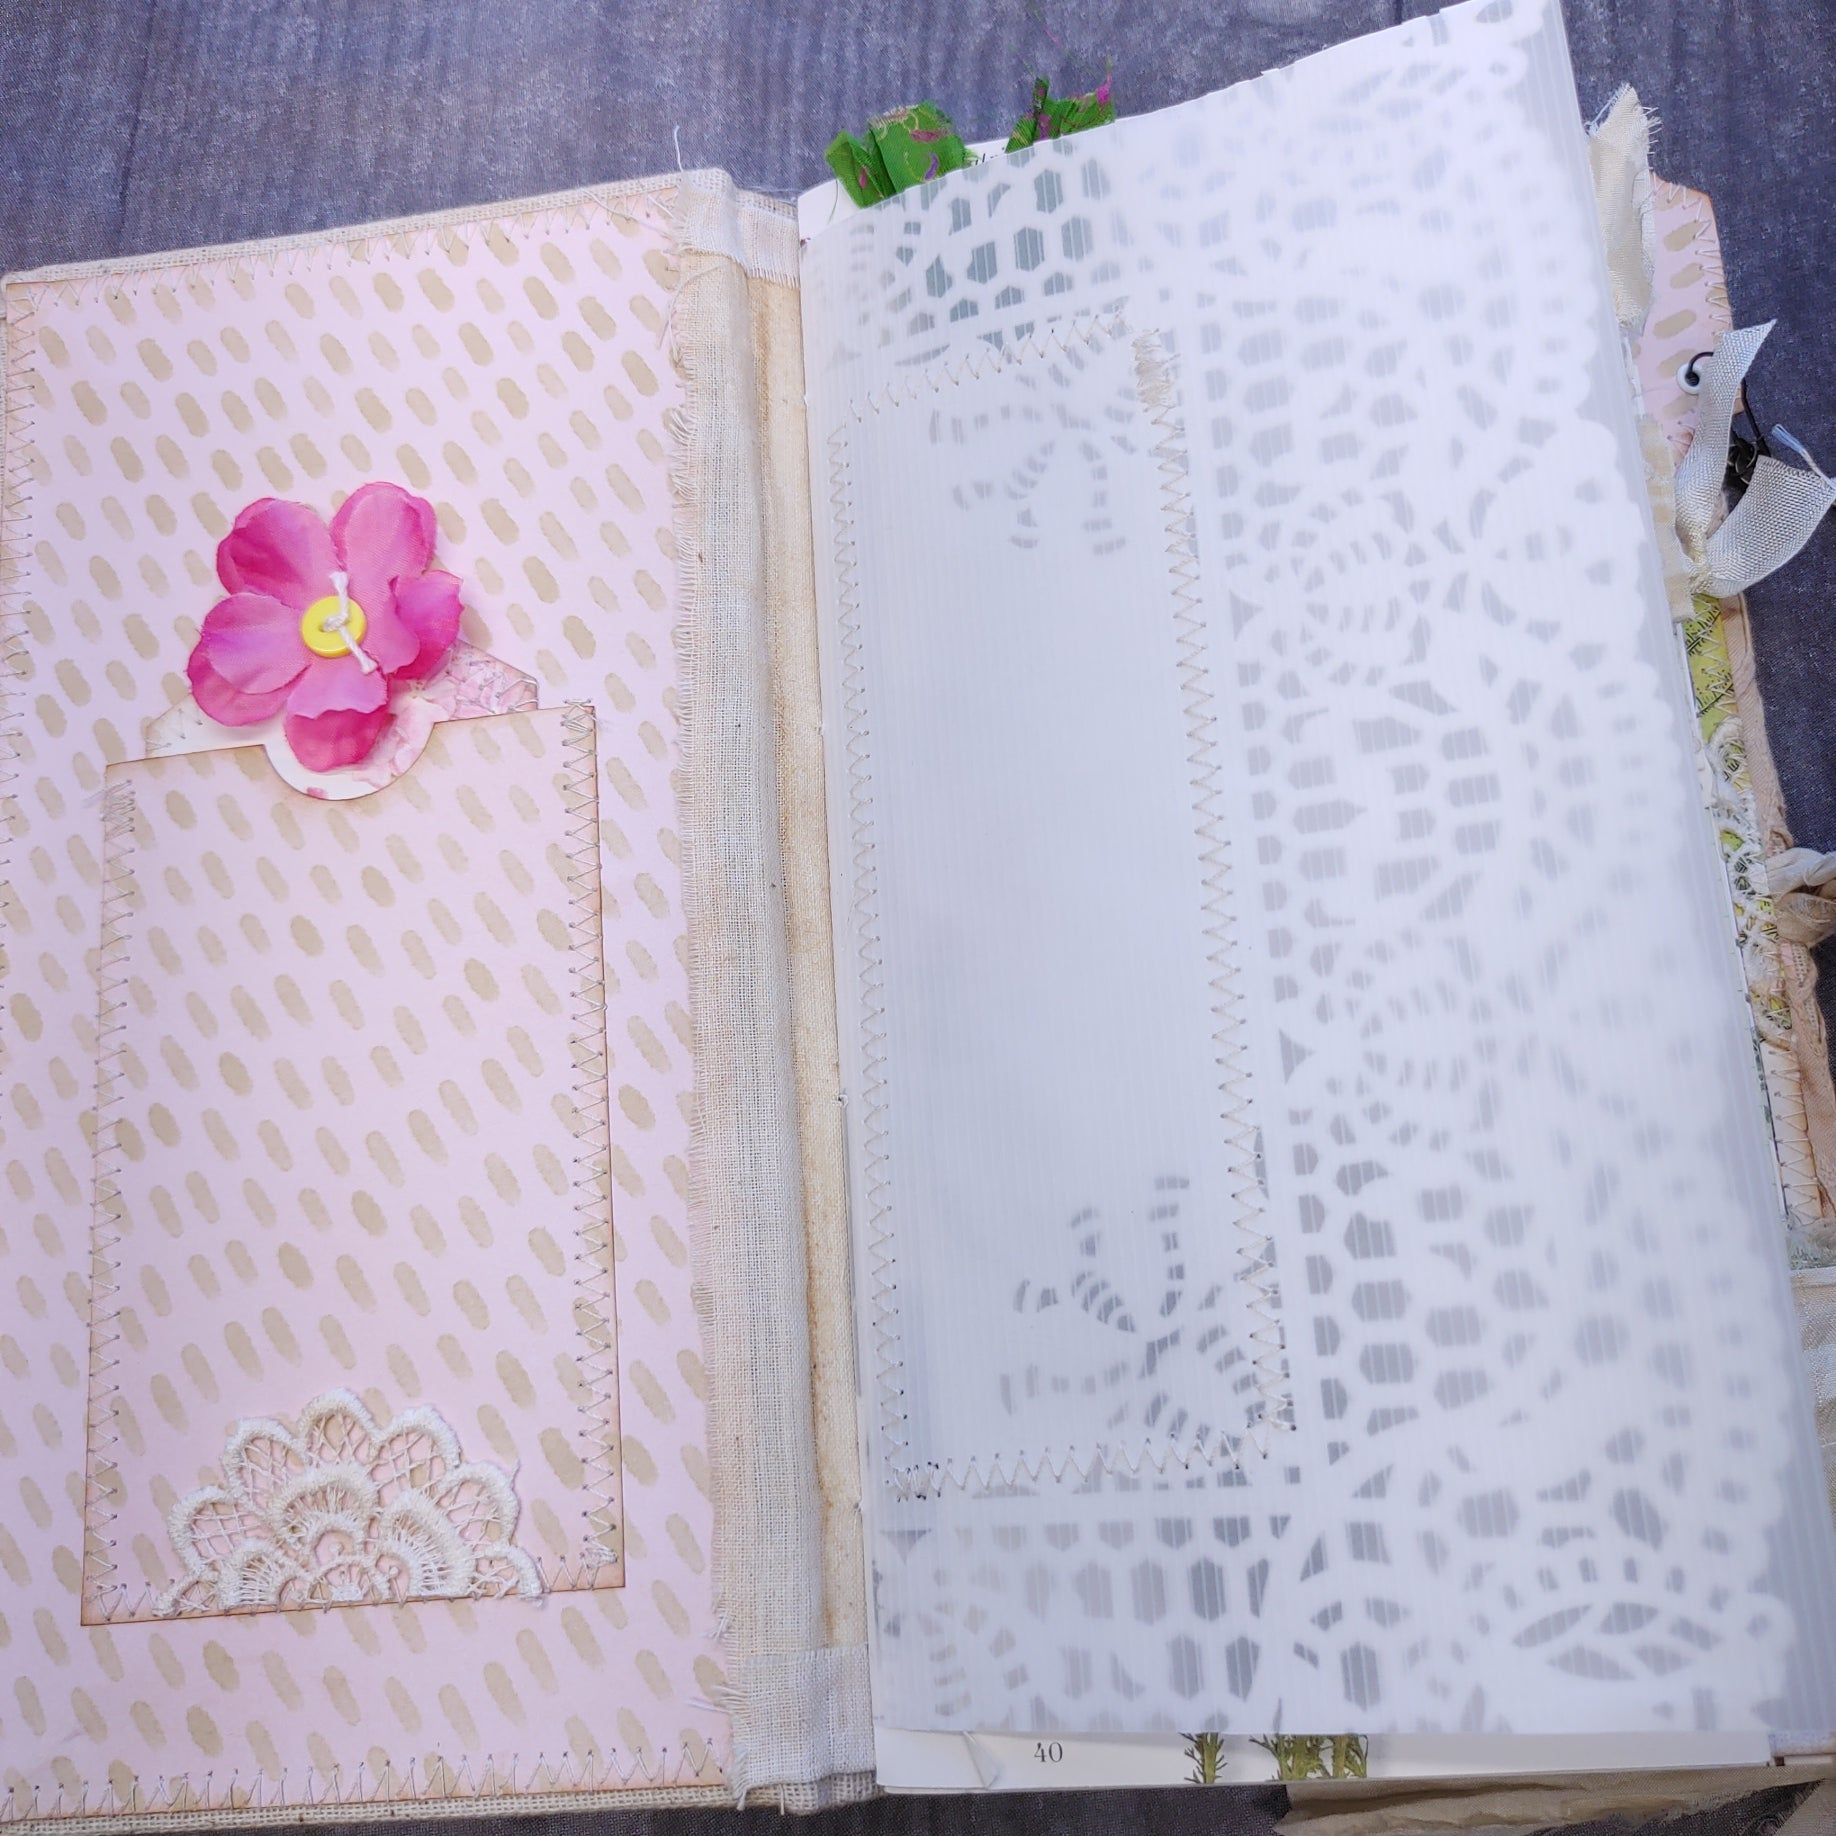 Battenburg Lace Journal by Lonny